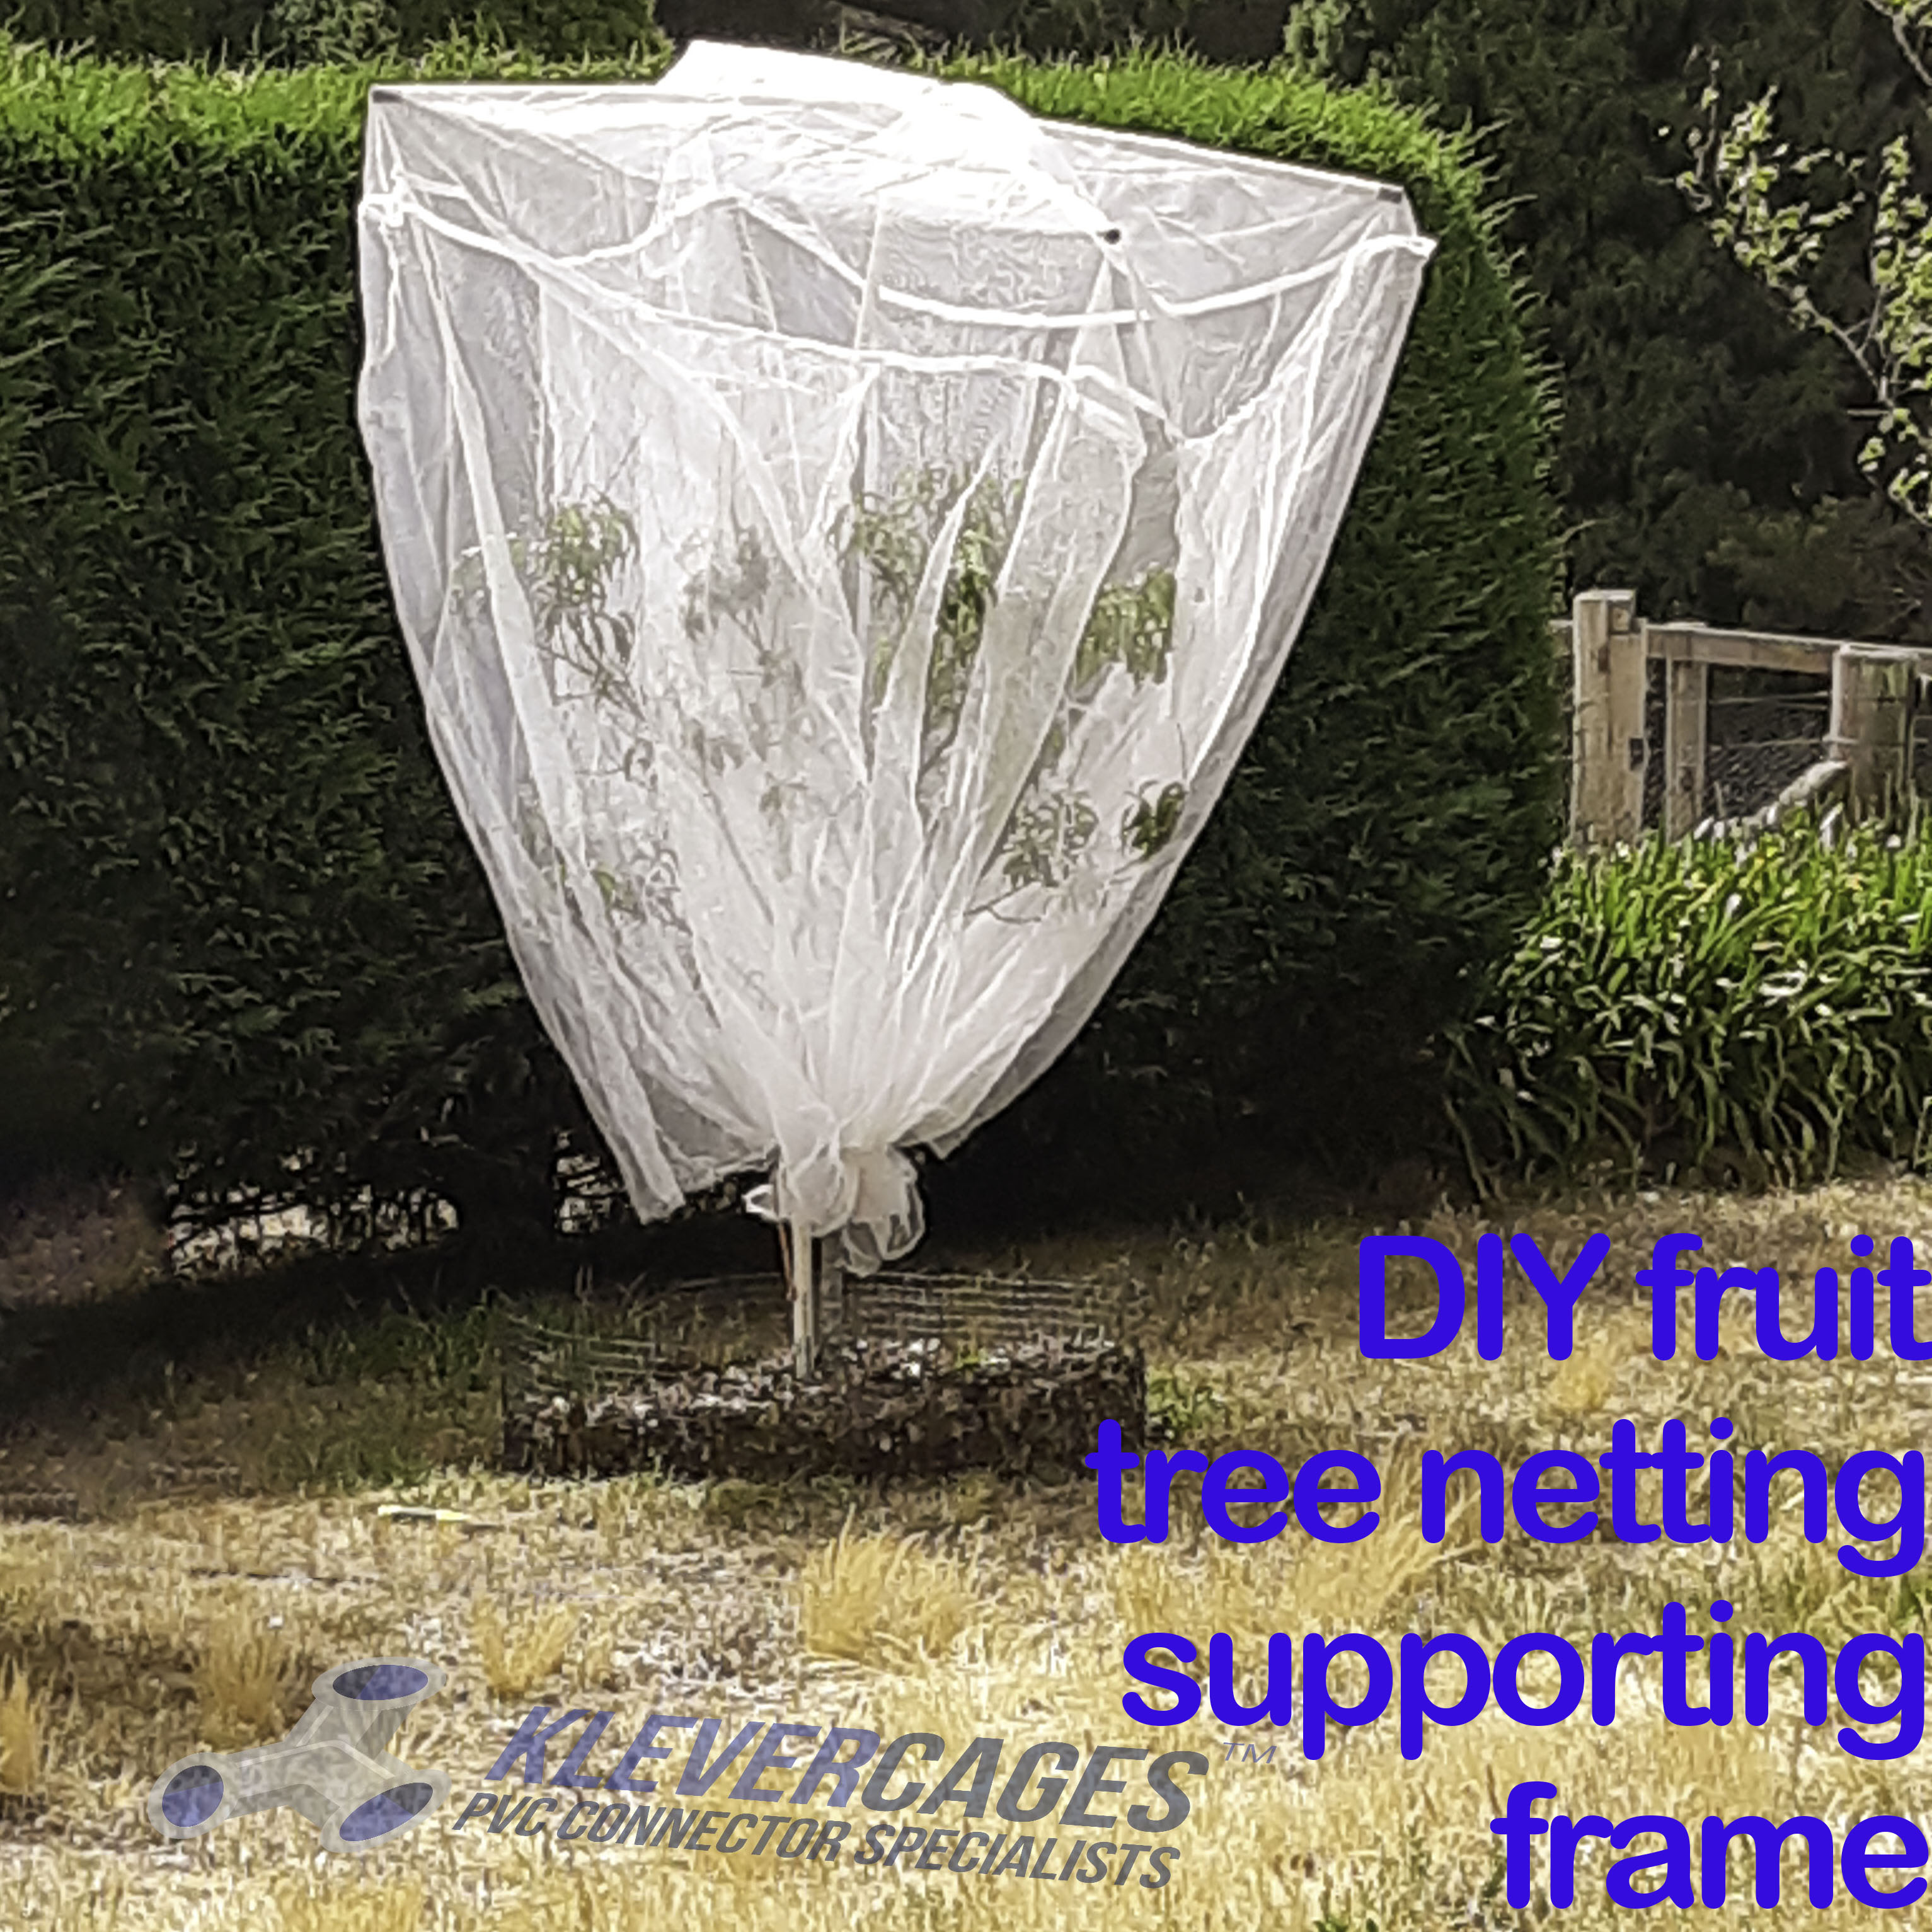 white fine mesh netting covering-a-fruit-tree-supported-with-a-PVC-pipe-and-Klever-Connectors-including-5way-and-caps-from-Klever-Cages-Australia